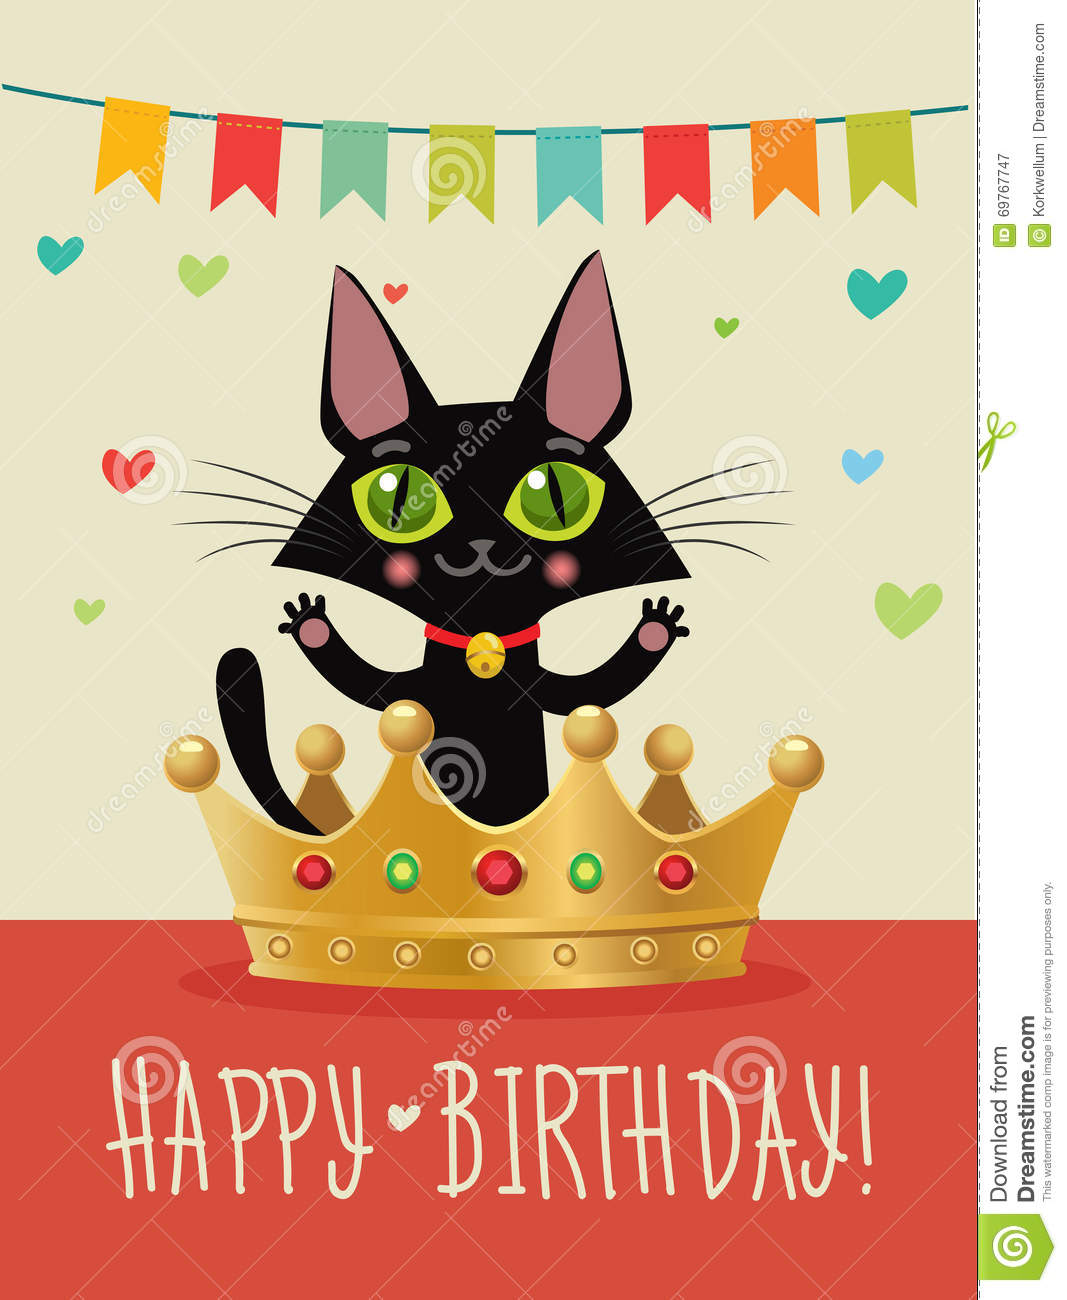 Happy Birthday To You Happy Birthday Card With Funny Black Cat – Humorous Cat Birthday Cards